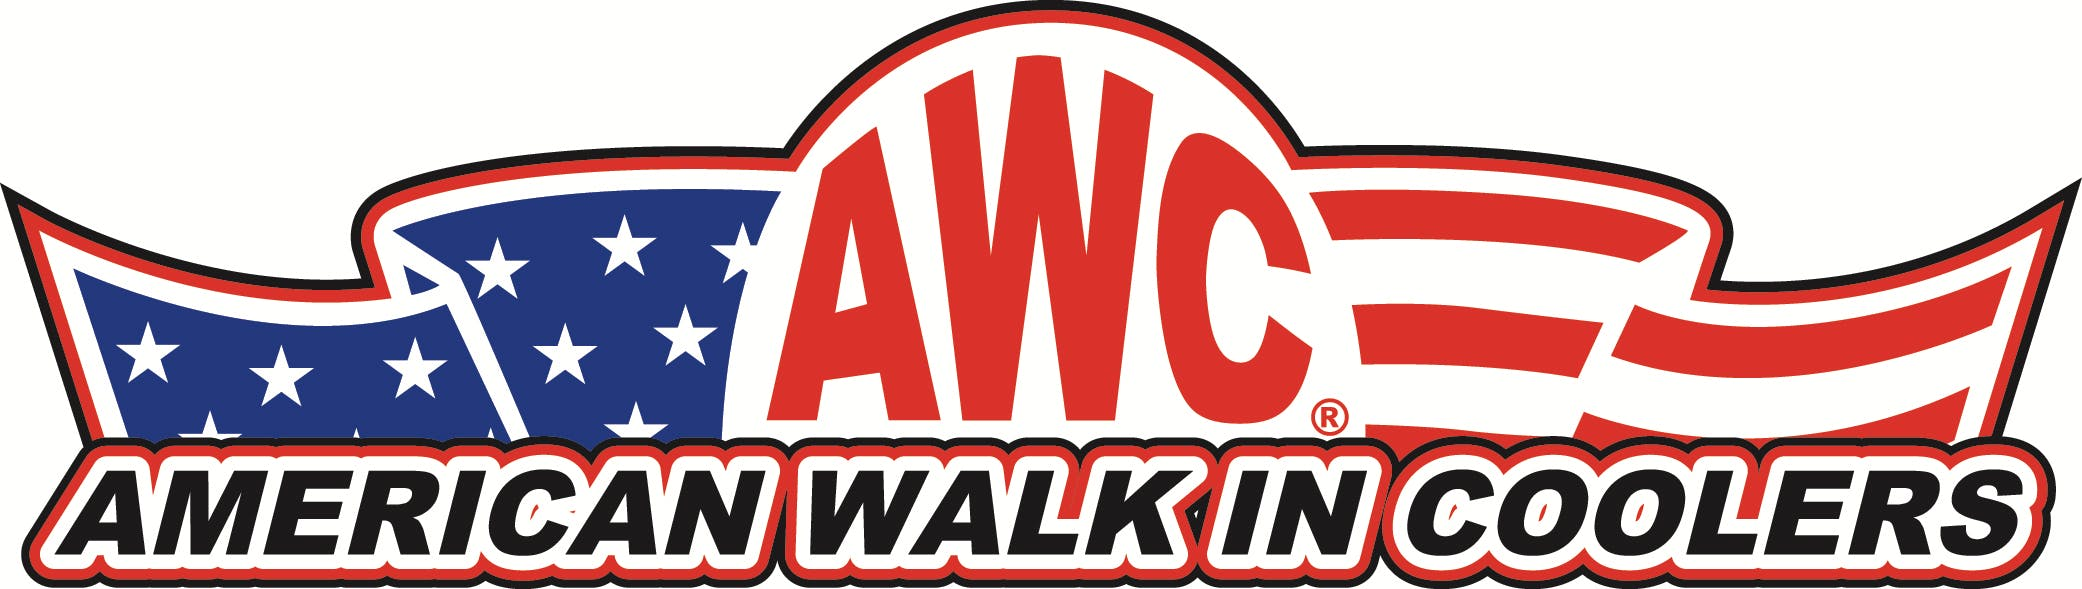 American Walk in Coolers logo